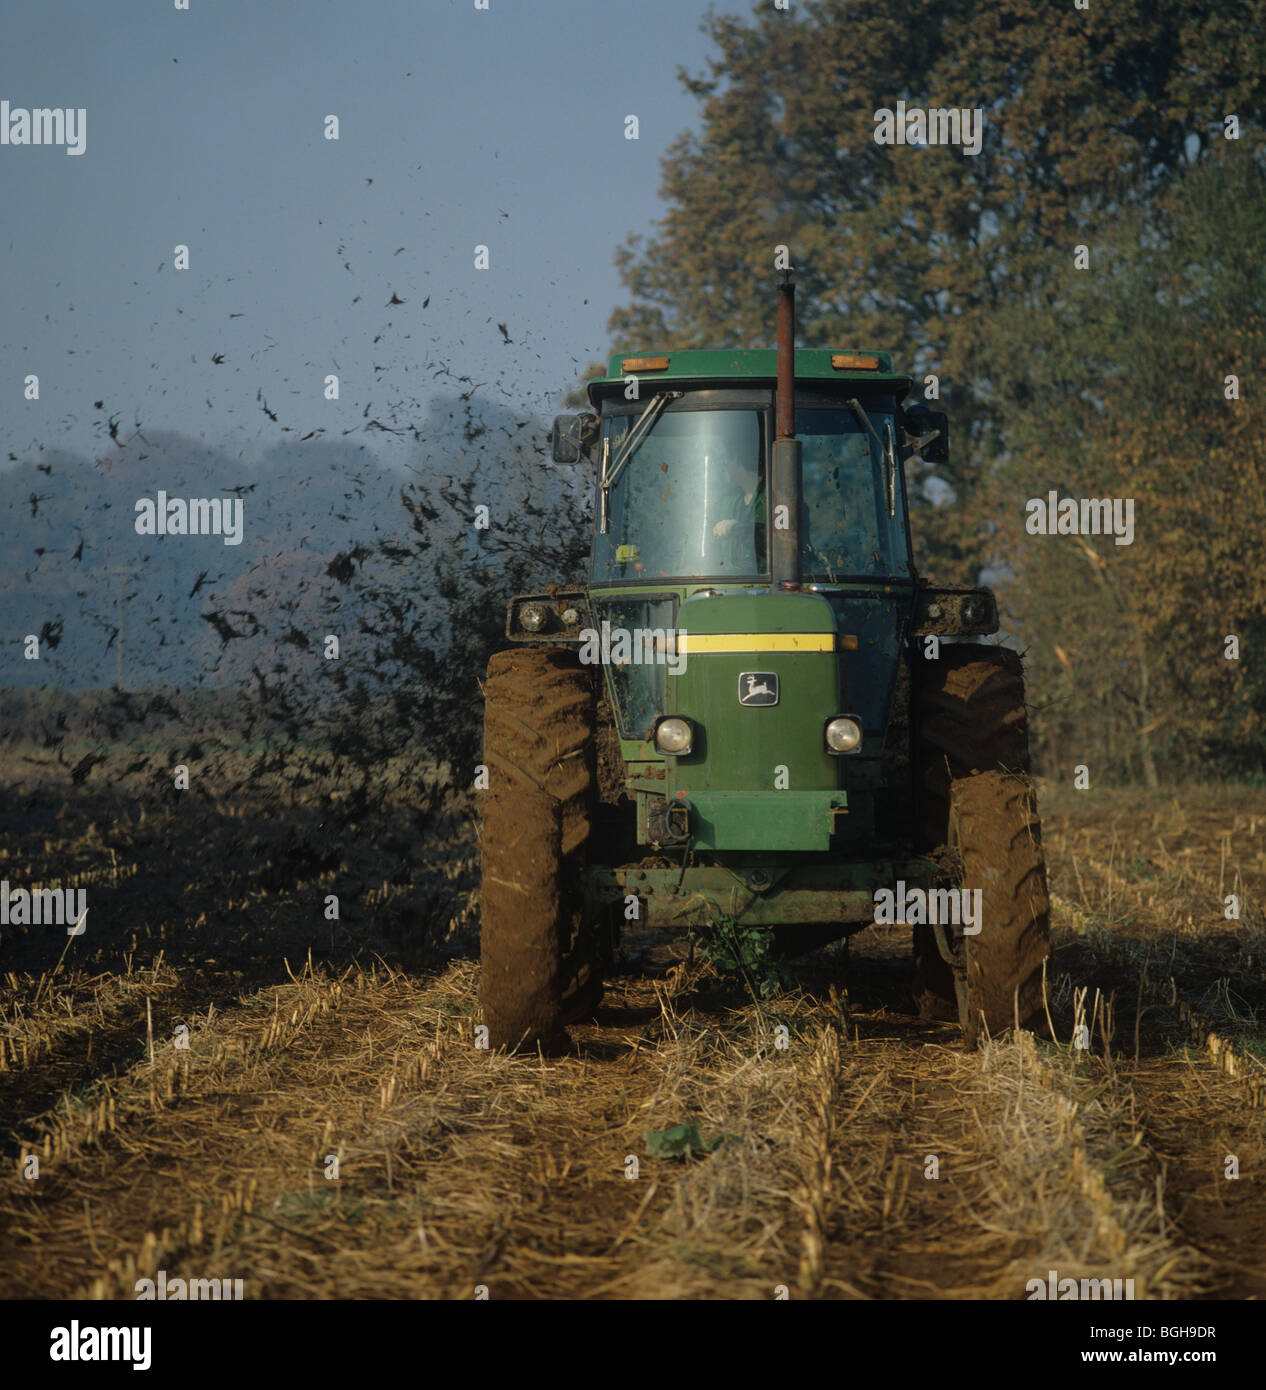 John Deere tractor spreading muck onto maize stubble before cultivation and replanting - Stock Image